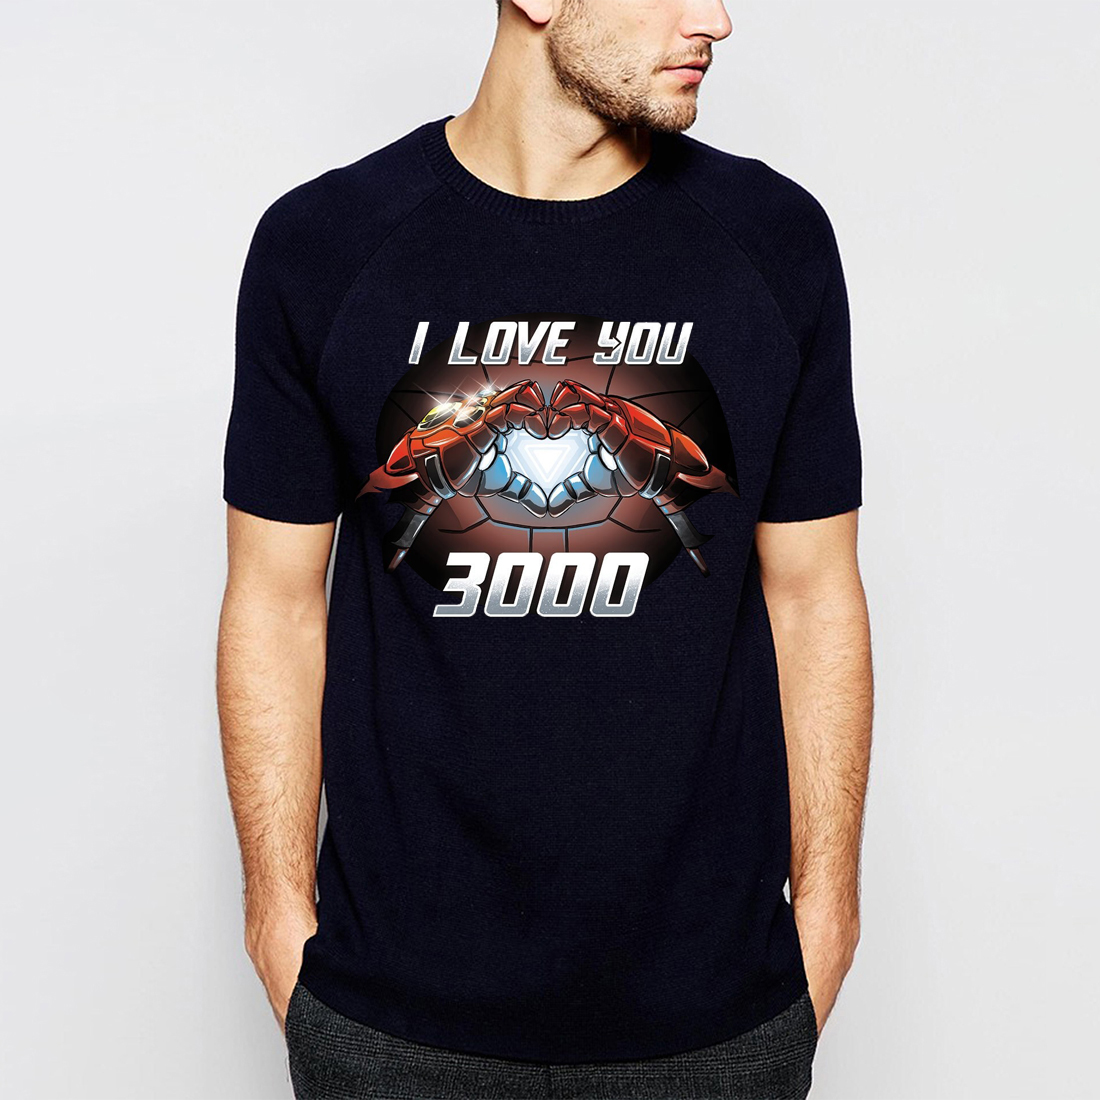 Tony Stark I Love You 3000 T-Shirt Men The Avengers Iron Man Moive Shirt 2019 New Summer Casual Plus Size Tops Tees S-3XL